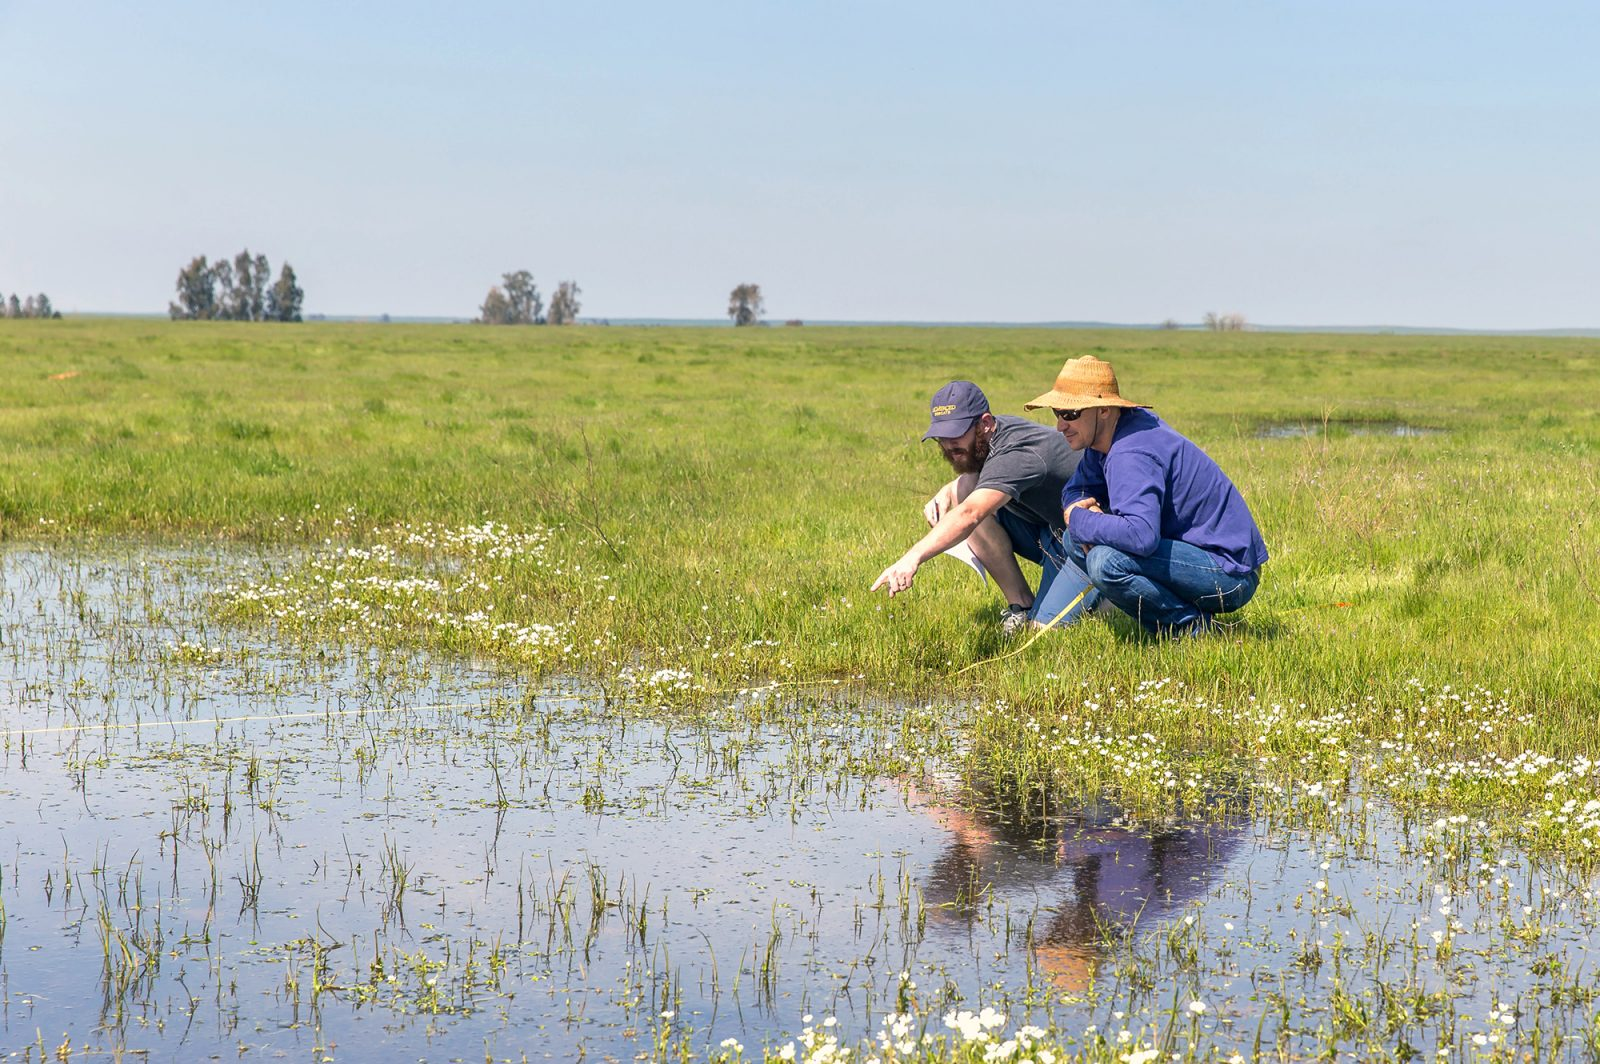 Field station planned for UC Merced's Vernal Pools and Grassland Reserve 12